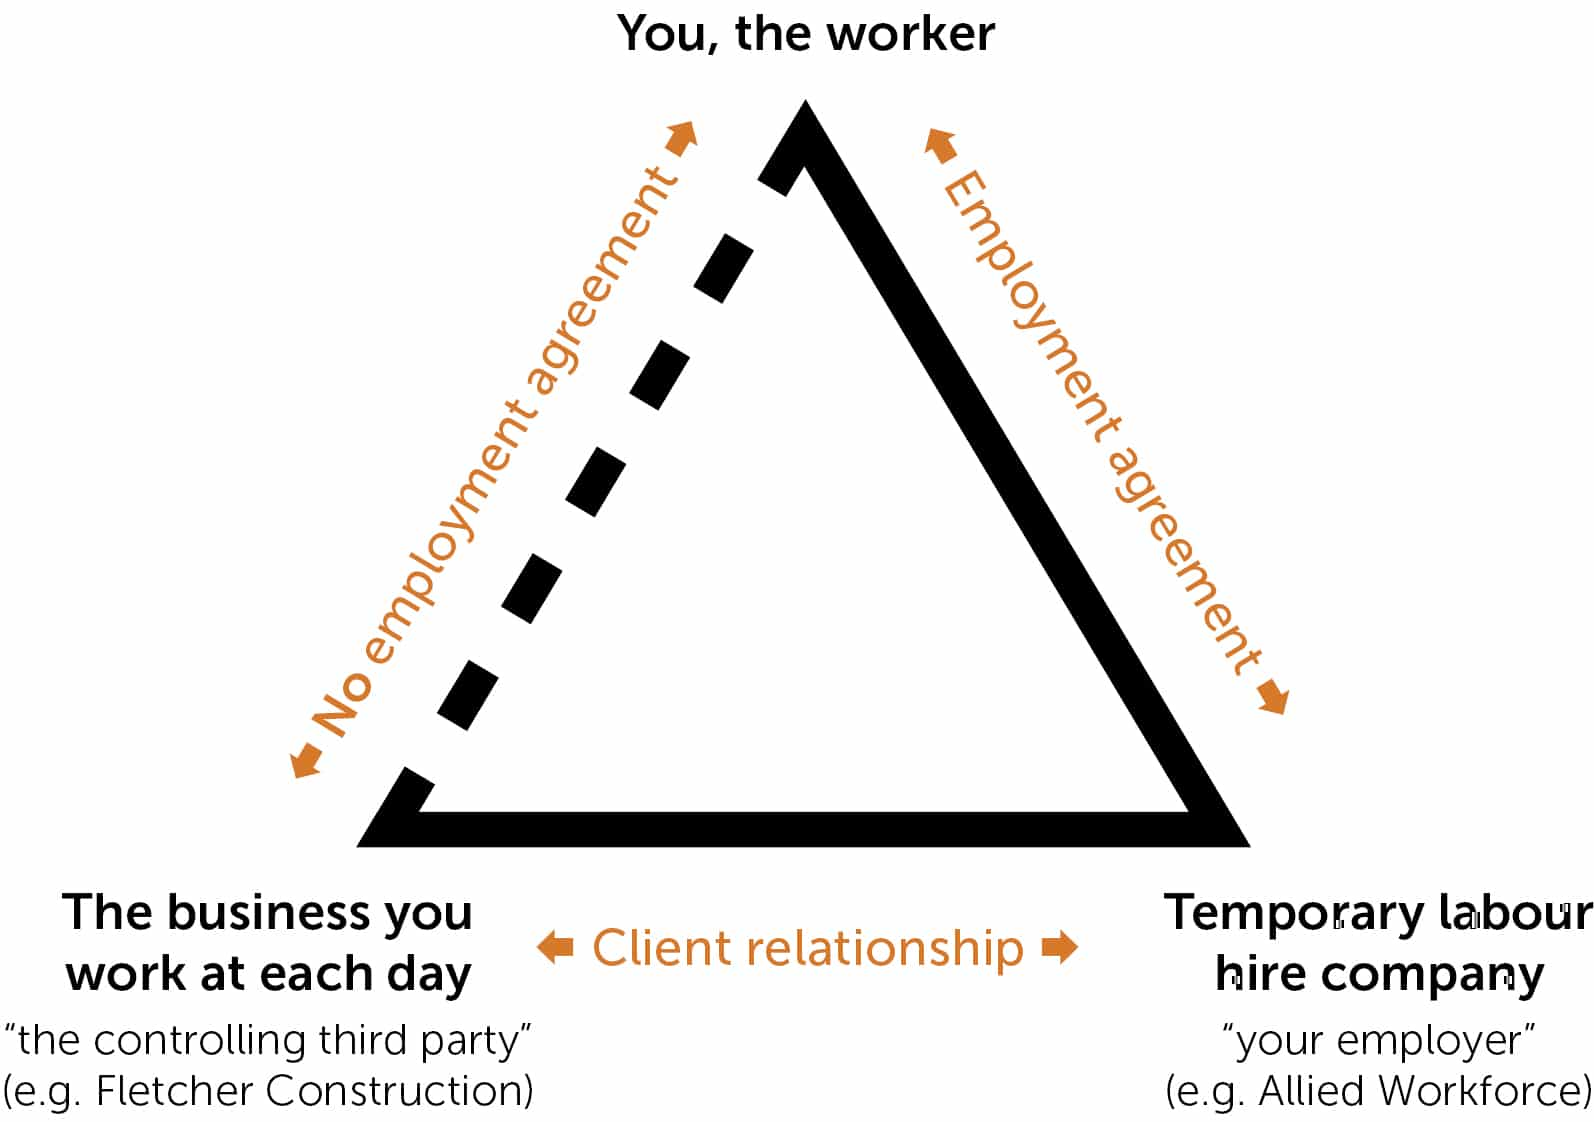 personal grievance at labour hire company diagram